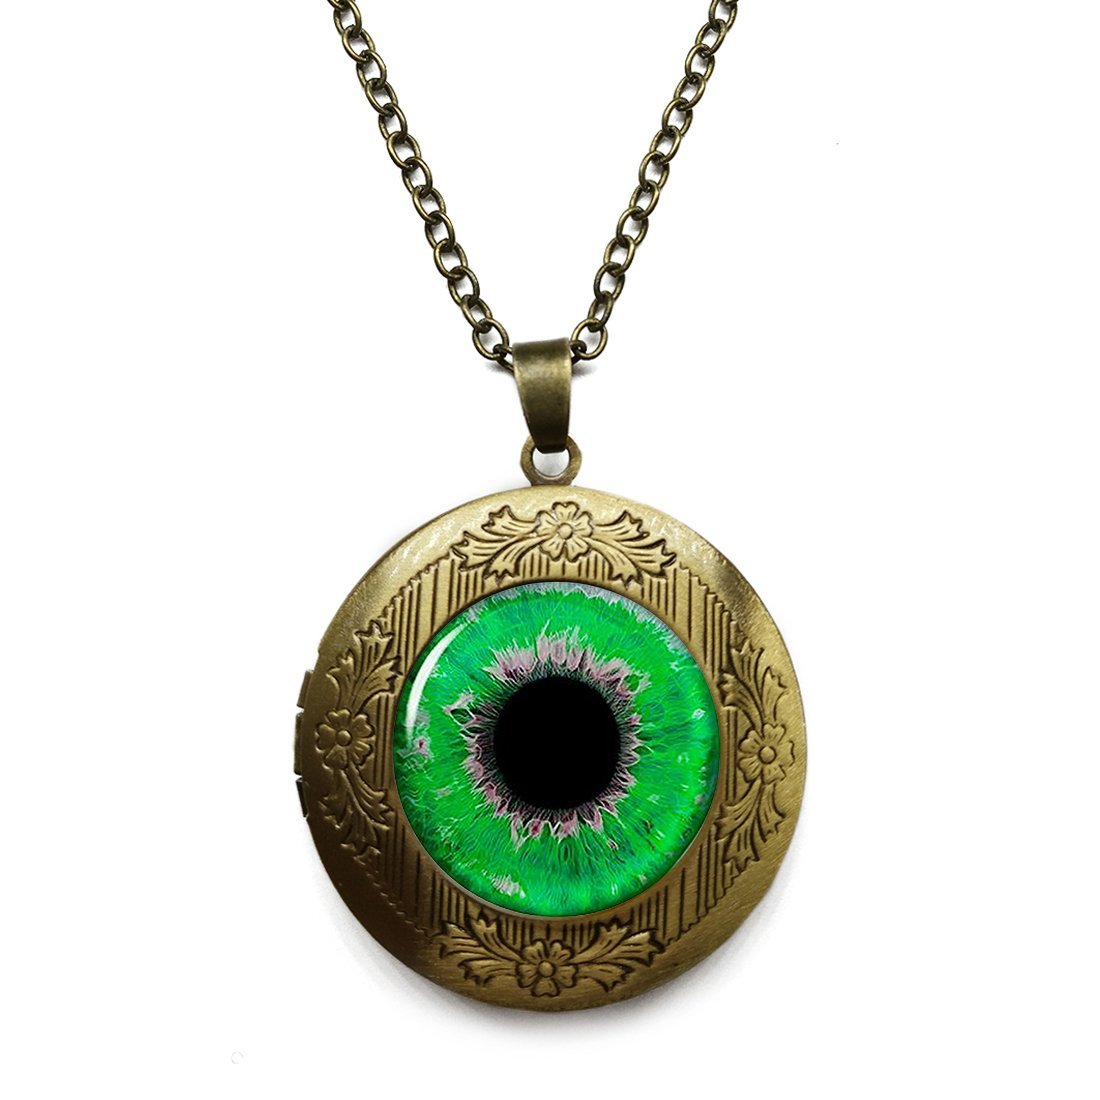 Vintage Bronze Tone Locket Picture Pendant Necklace Grass Green Eyeball Included Free Brass Chain Gifts Personalized